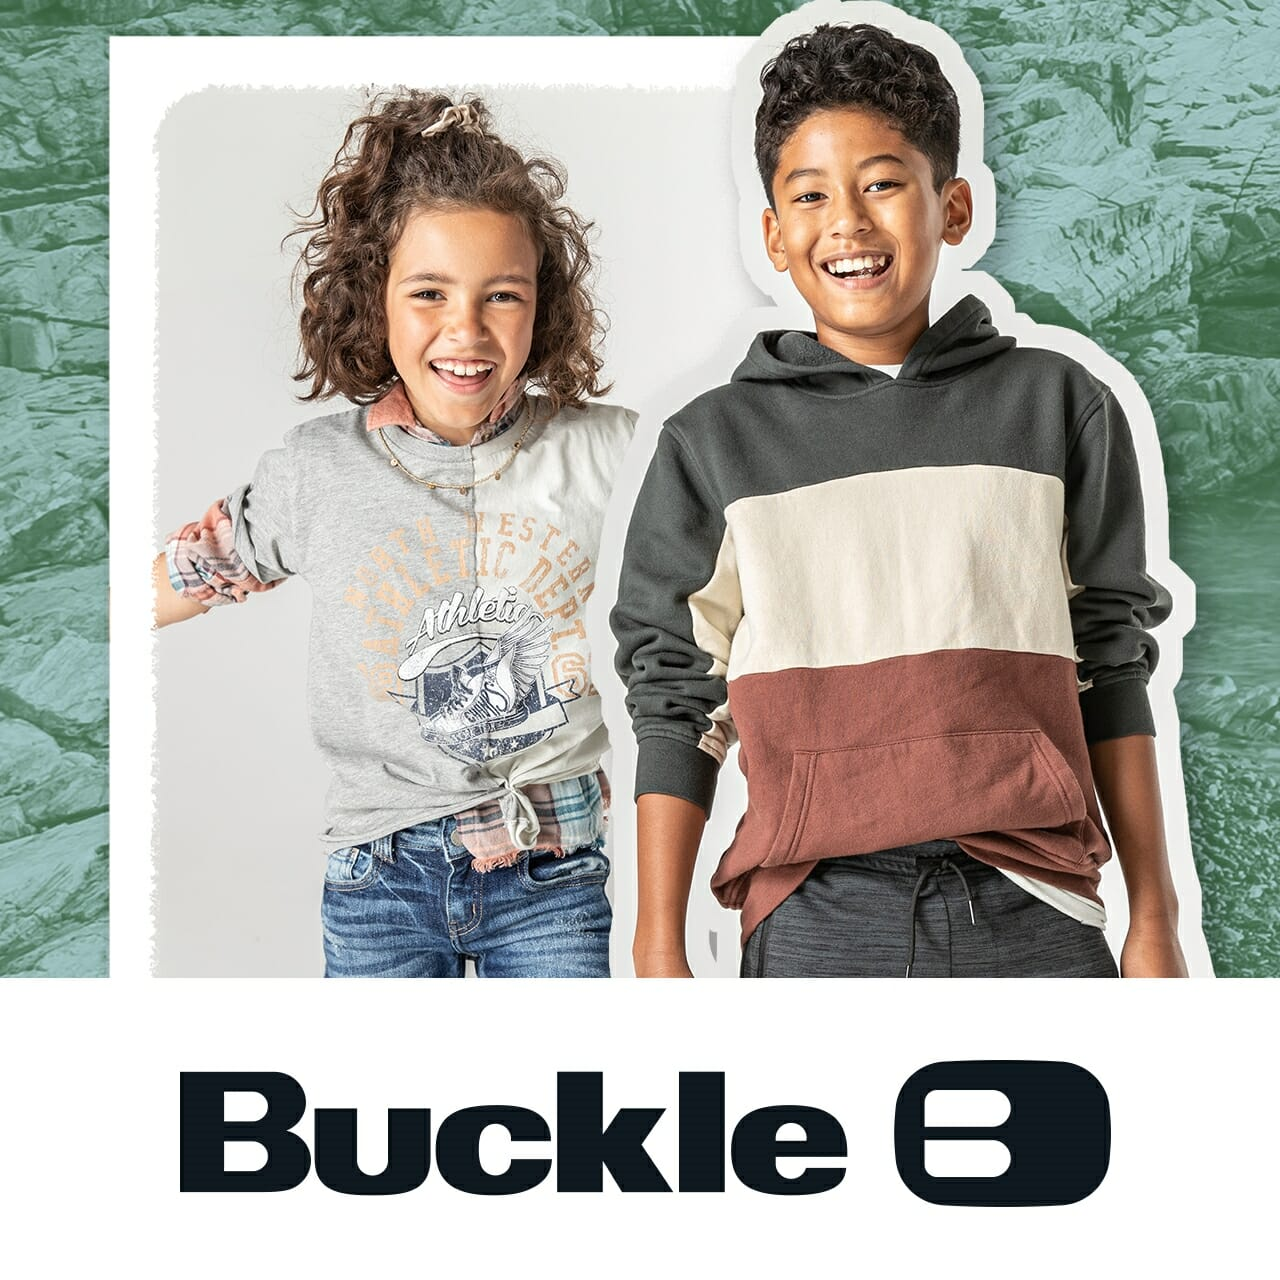 Two children wearing Buckle clothing.